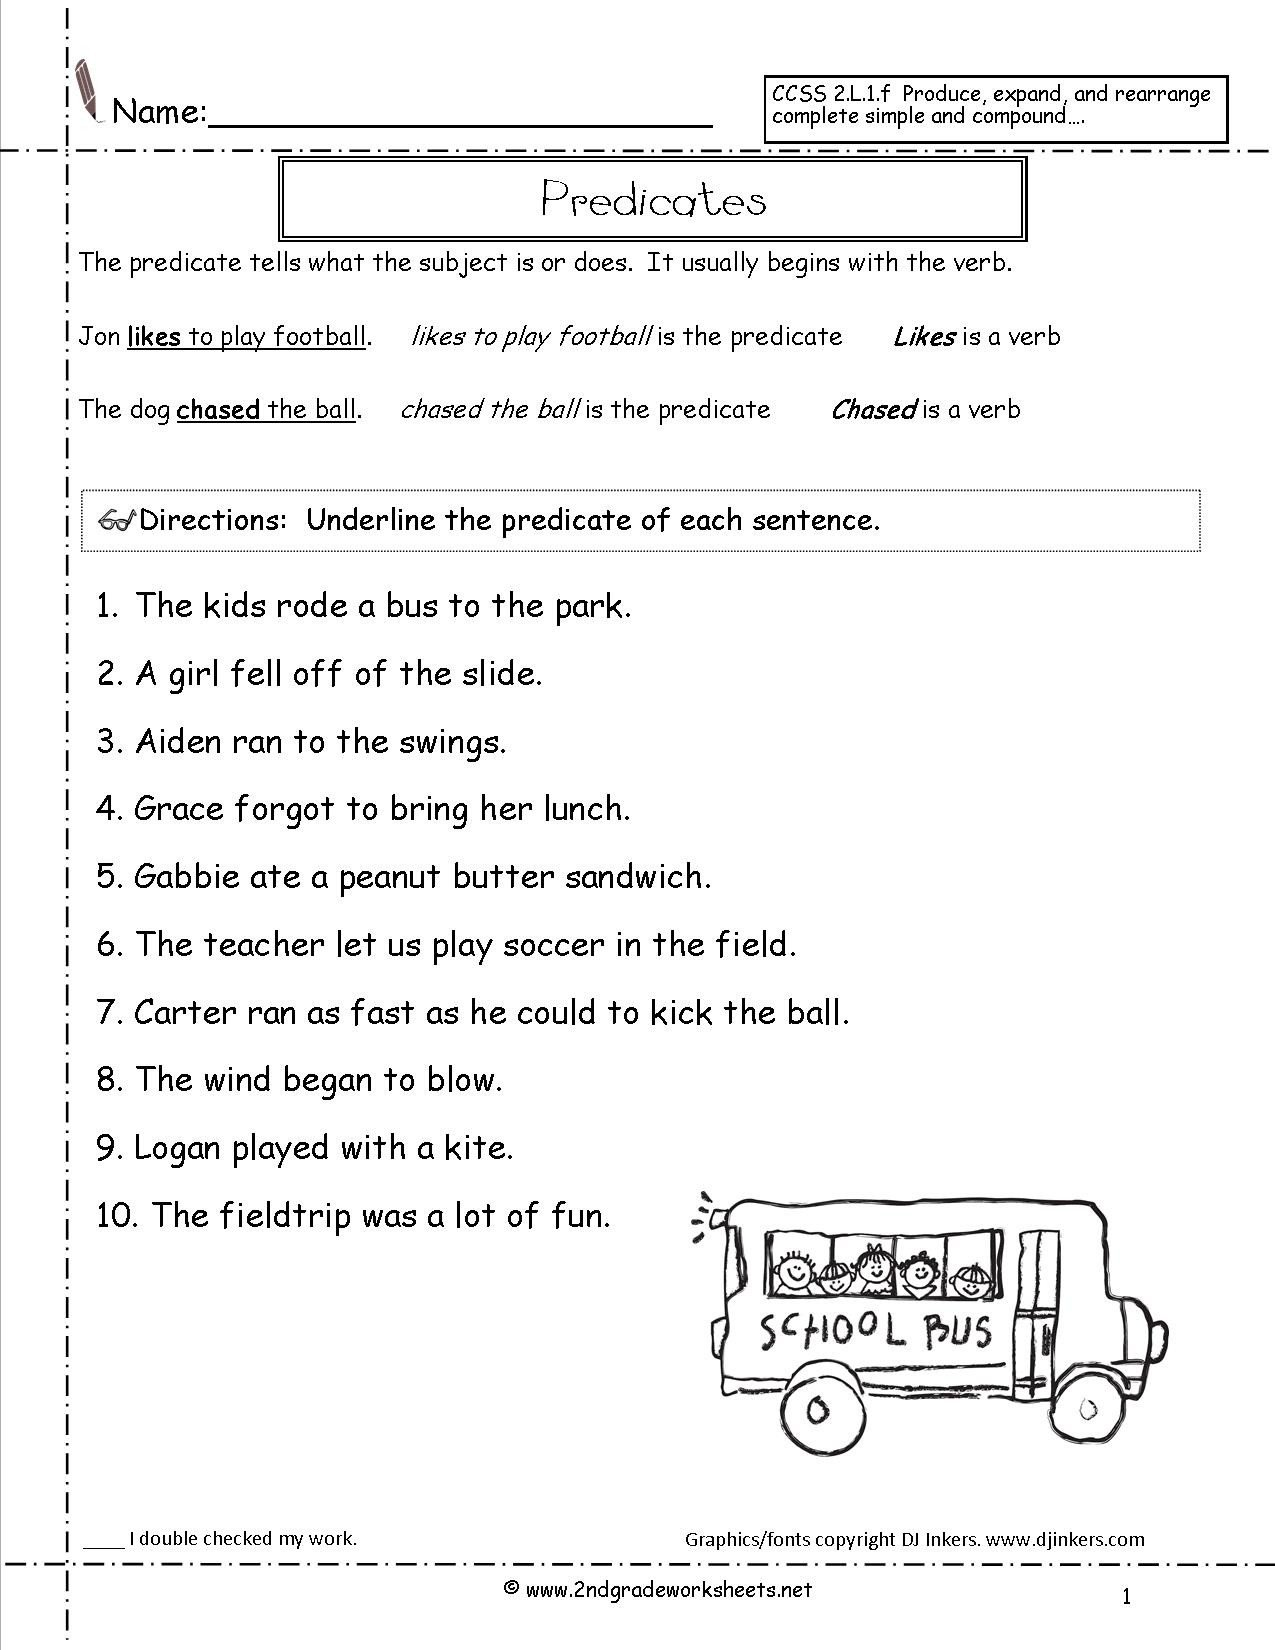 Complete Sentence Worksheets 3rd Grade Editing Worksheet Sentece